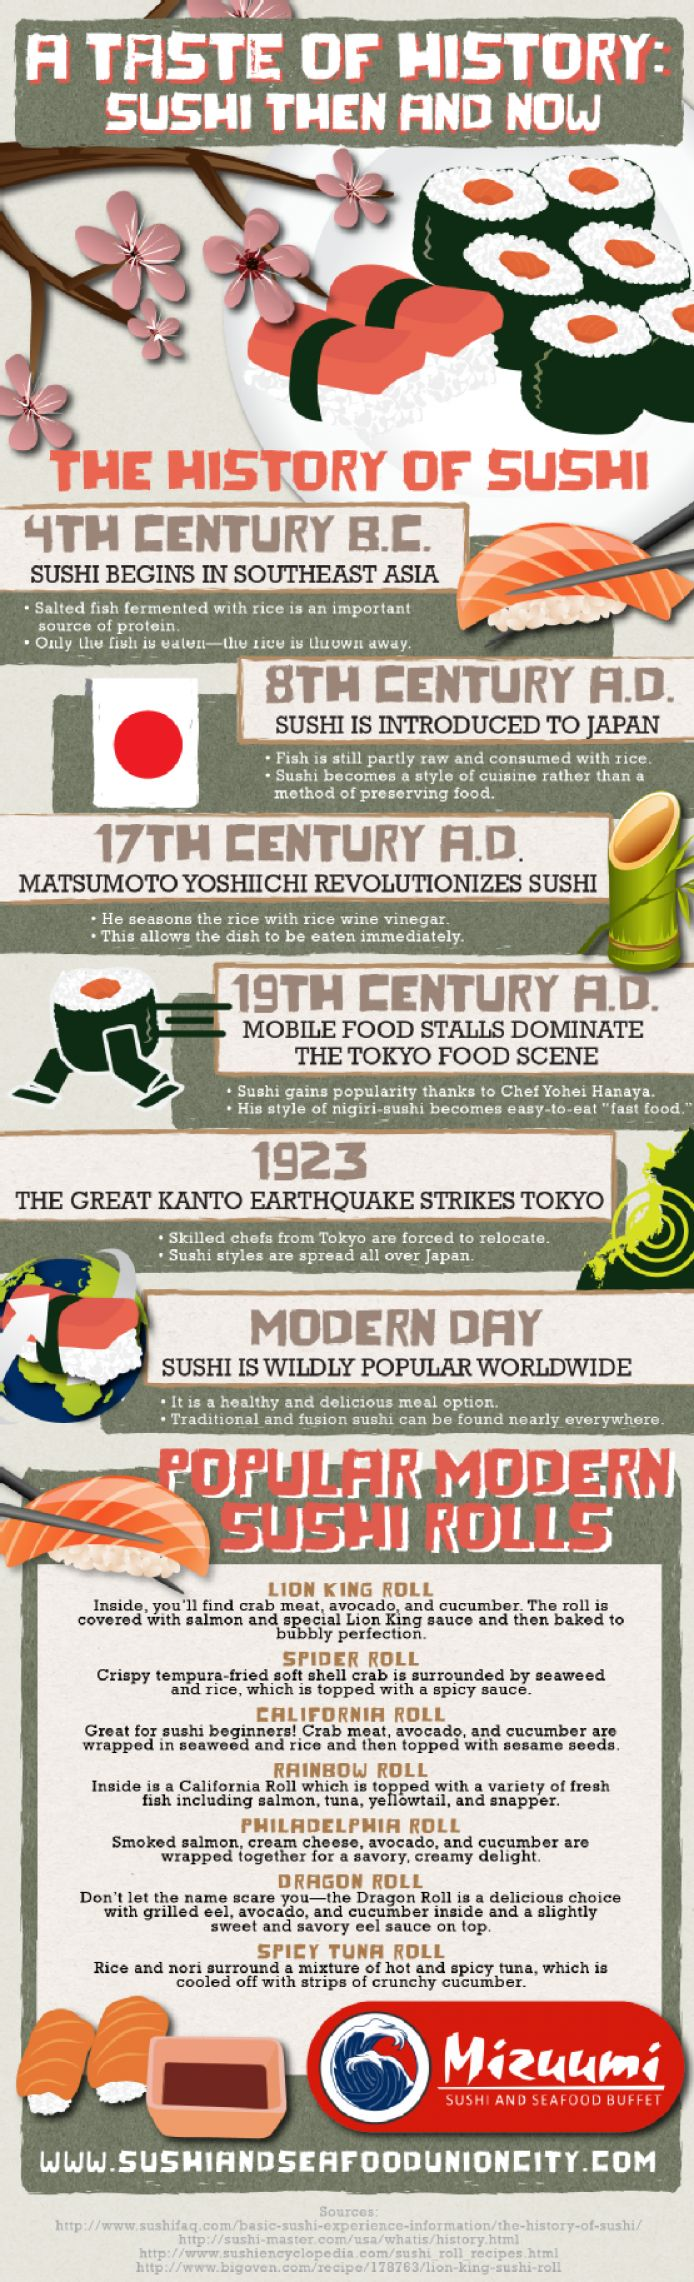 If you love #sushi, here's a quick visual #guide about the history of this world famous food - Discover more in this #infographic - http://finedininglovers.com/blog/food-drinks/the-history-of-sushi-infographic/